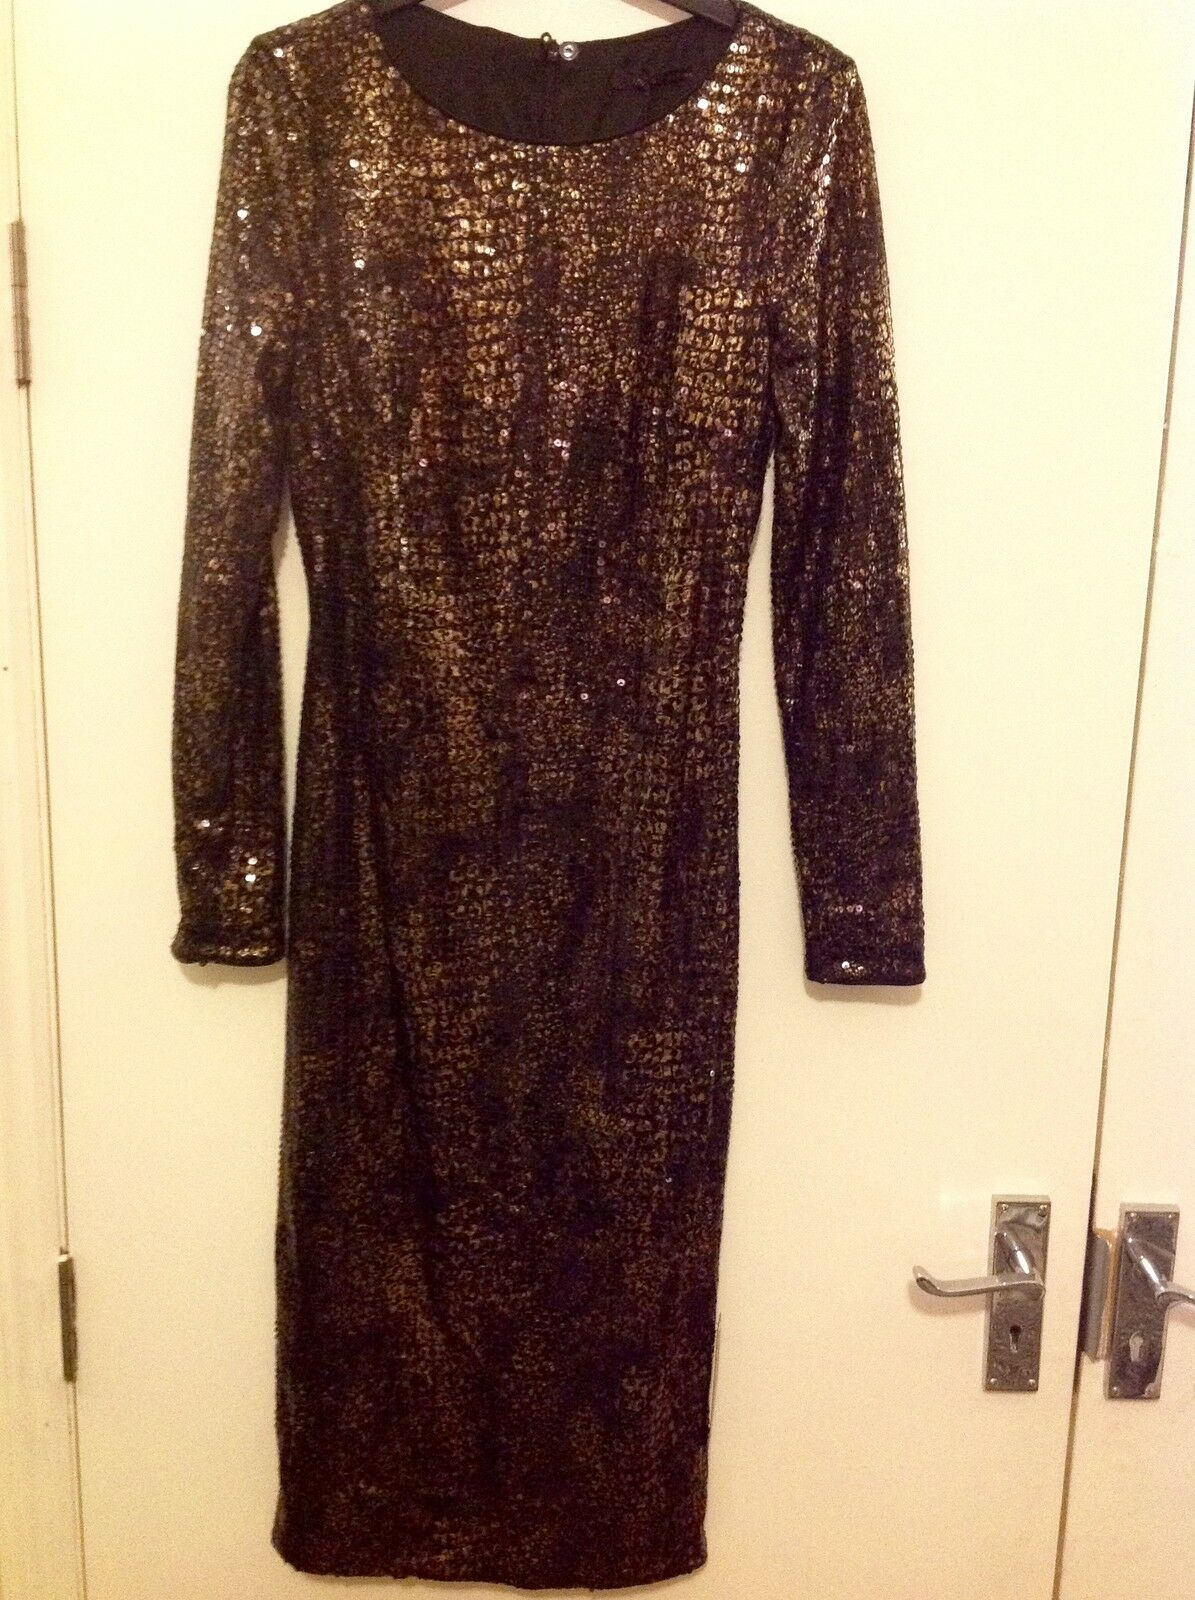 M&S COLLECTION New Long Sleeve Sequin Effected Shift Dress Size 8 Regular